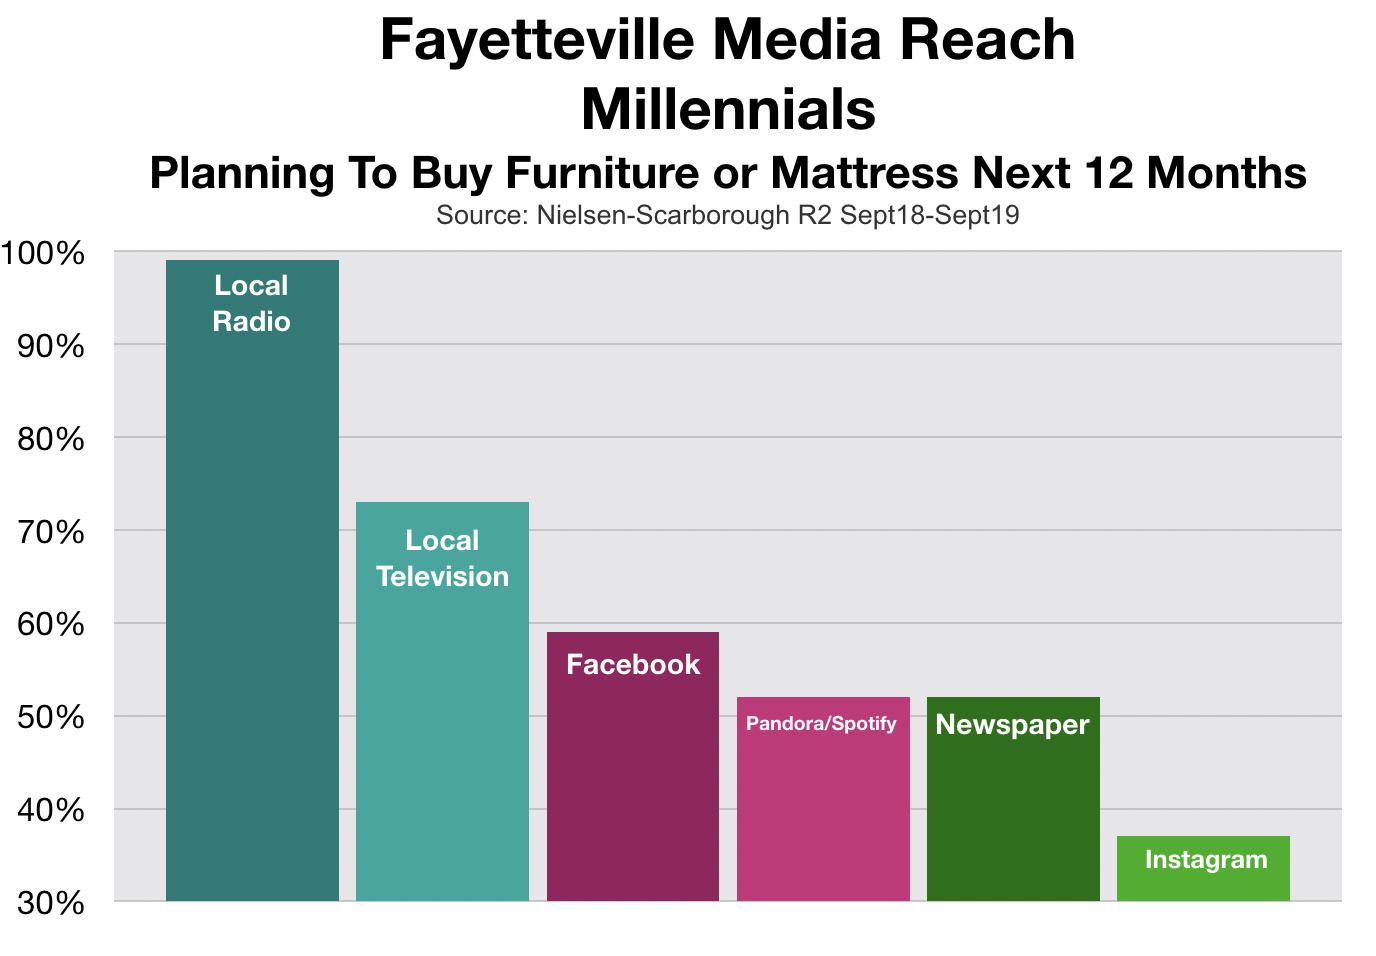 Advertising In Fayetteville Millennials Furniture Shoppers